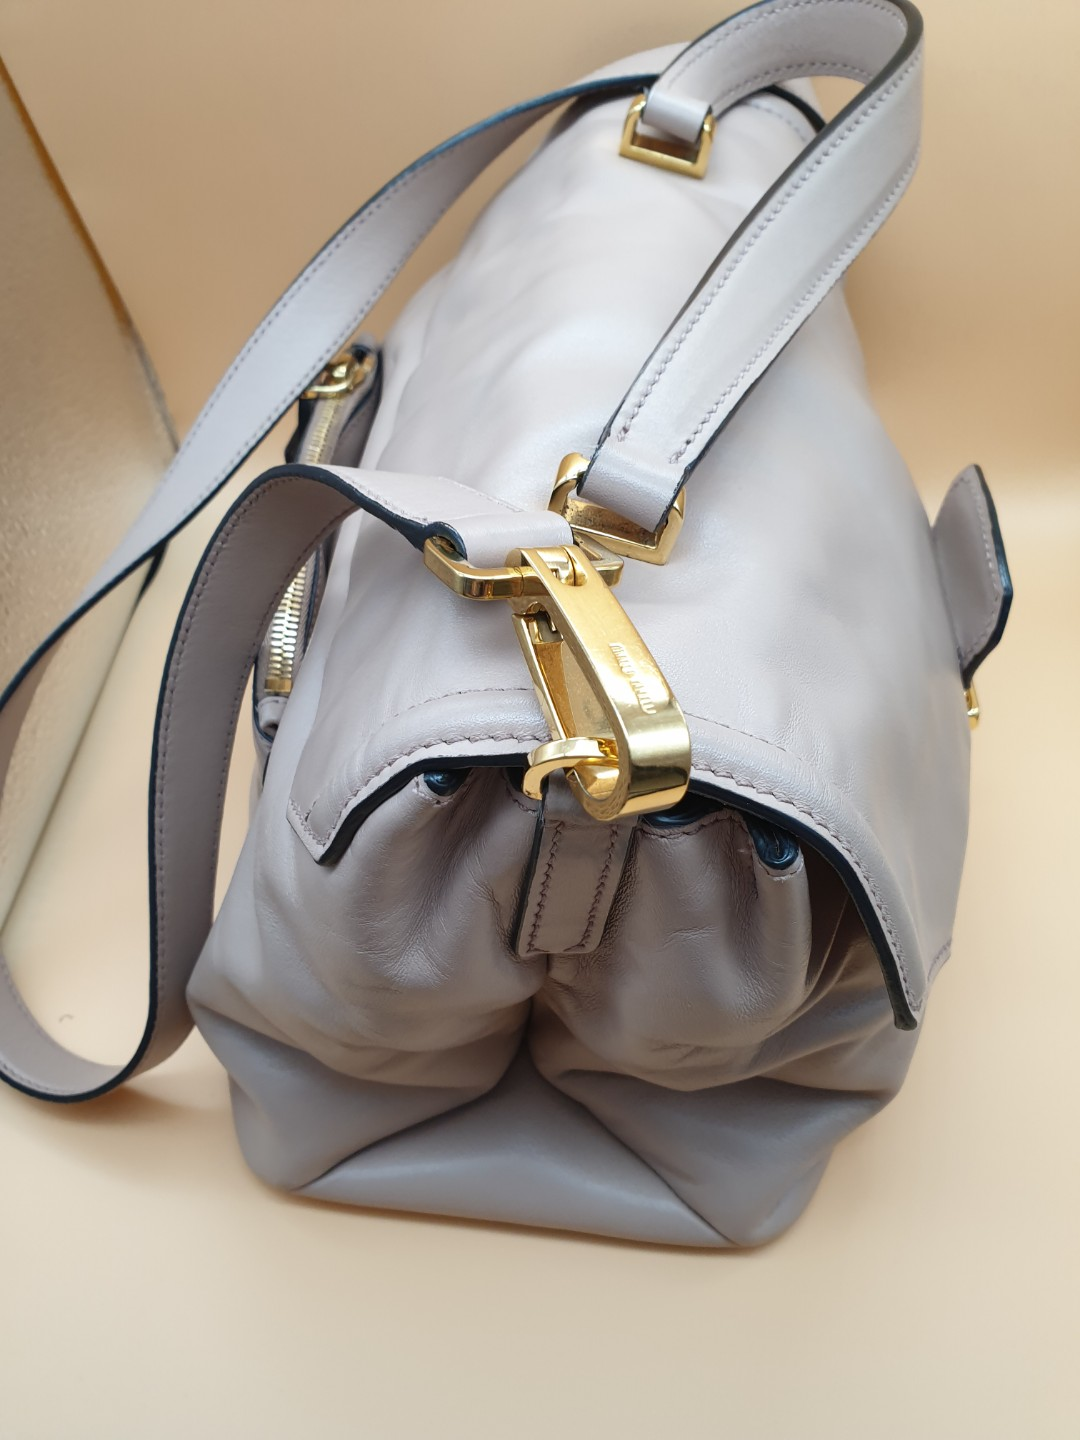 34430cf24bef Miu Miu Vitello Soft Calfskin Leather Bag